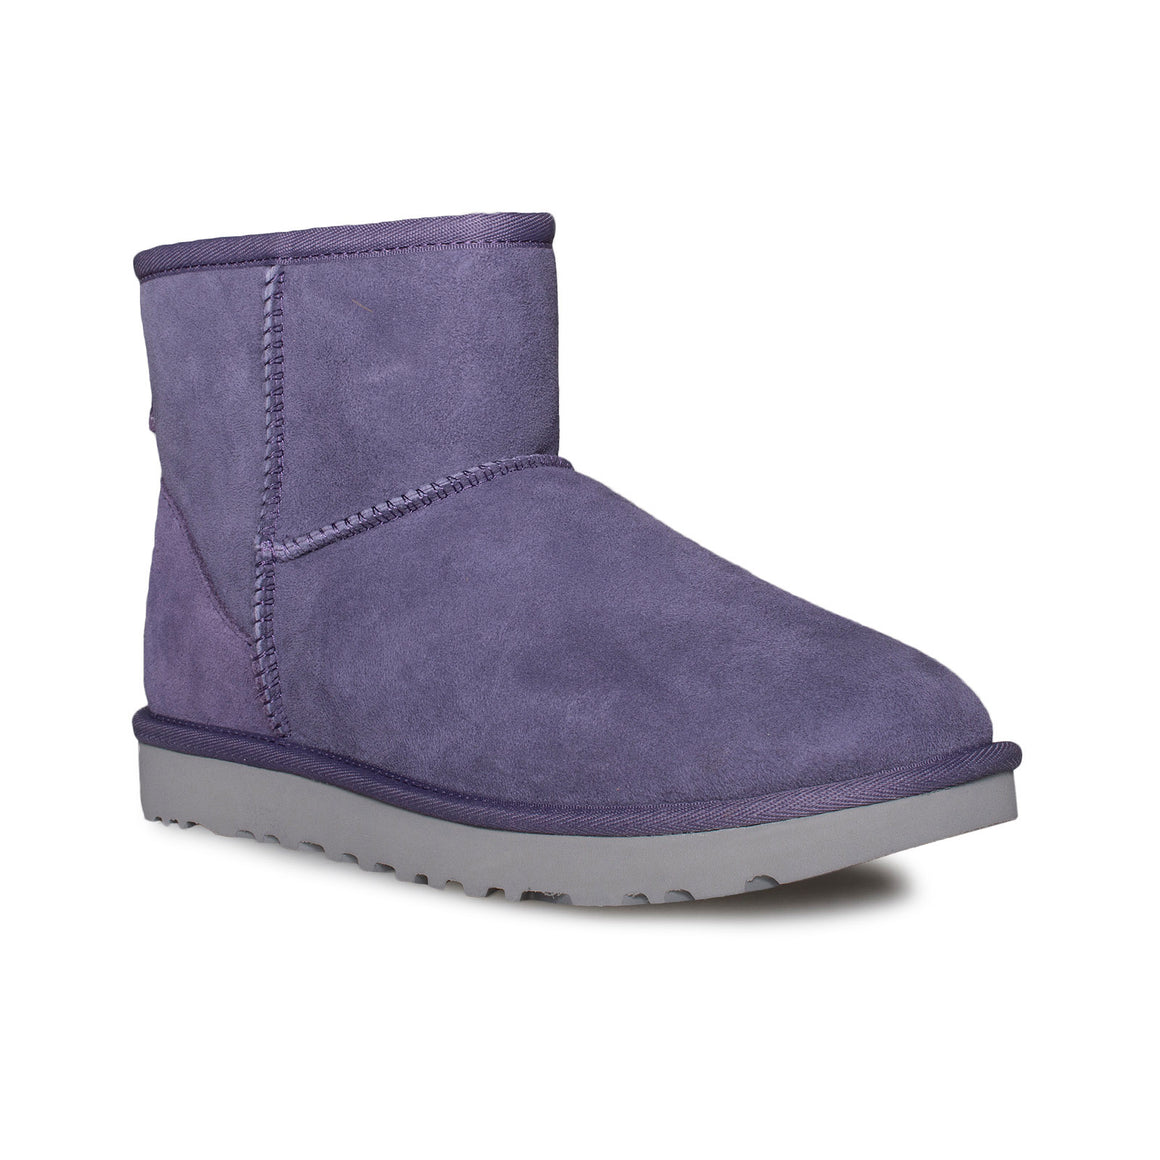 UGG Classic Mini II Purple Sage Boots - Women's